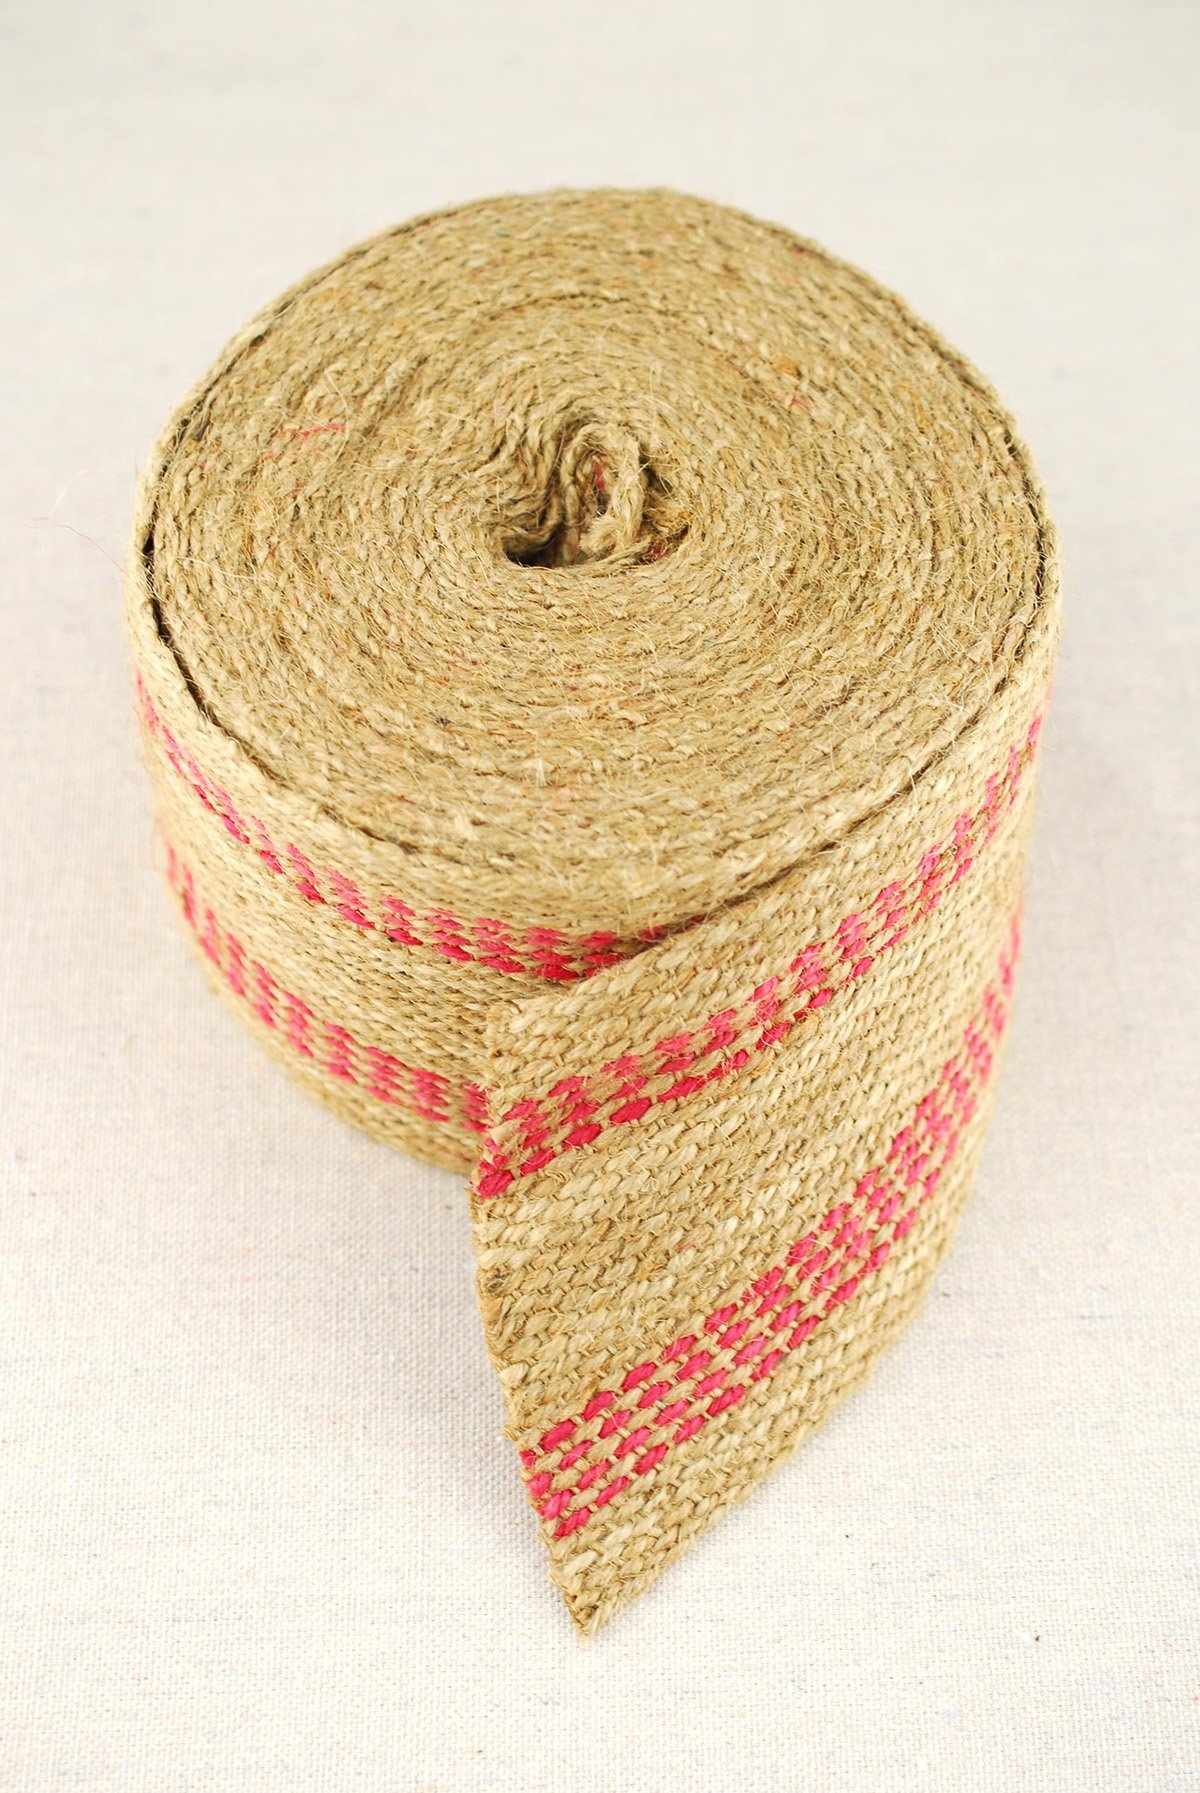 Red Upholstery Craft Jute Webbing 11 lbs 3.5 x 10Yd and 20 Yd Rolls 20 yd